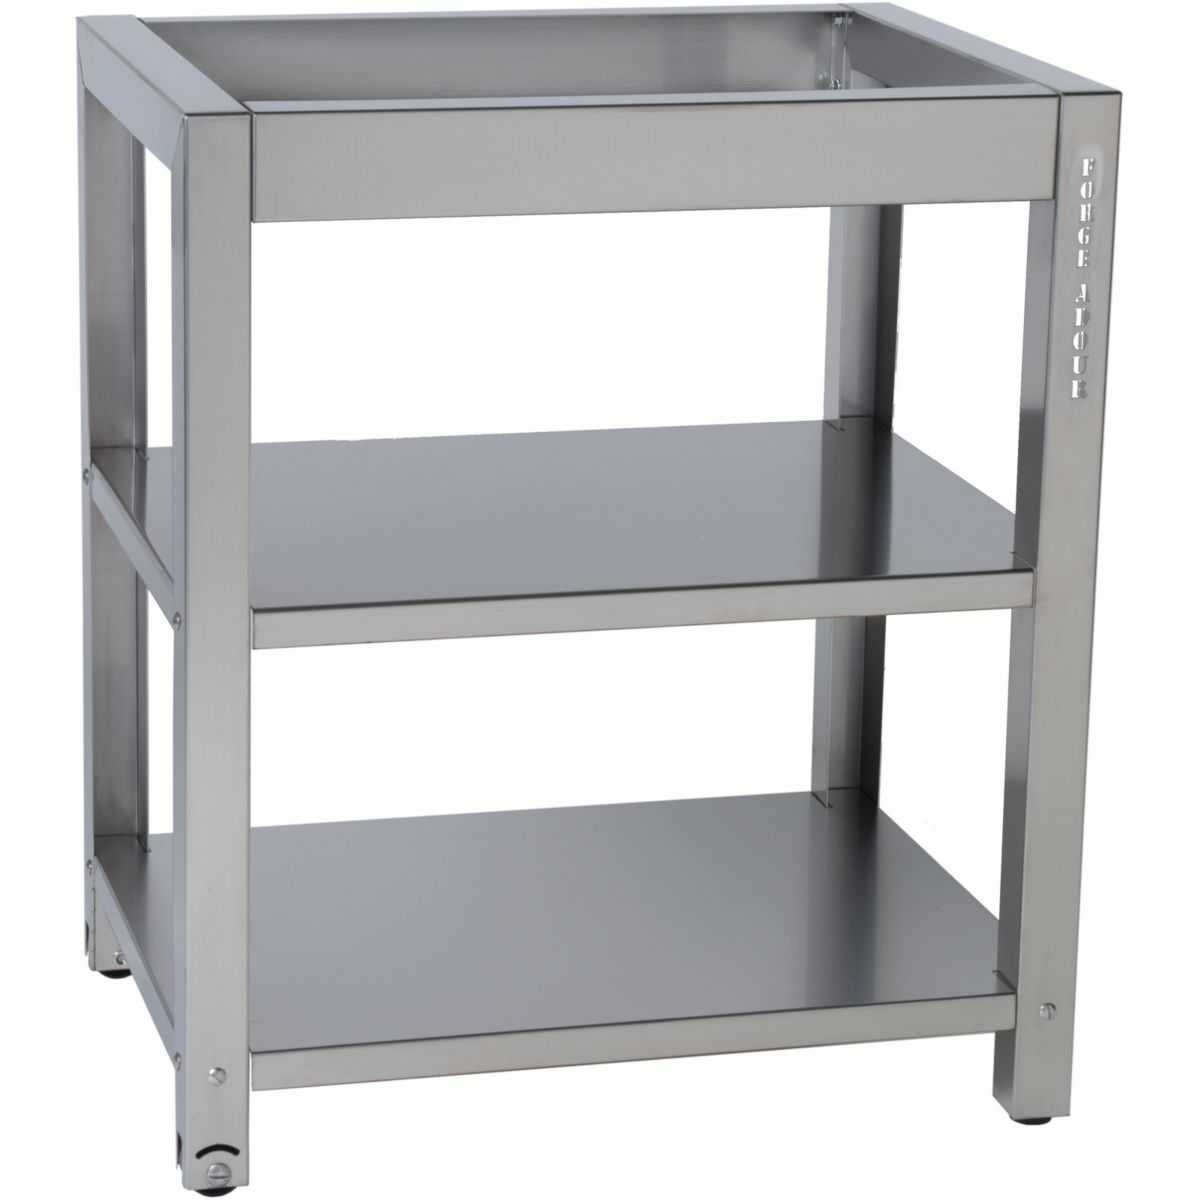 Support table FORGEADOUR Inox SGI56 pour